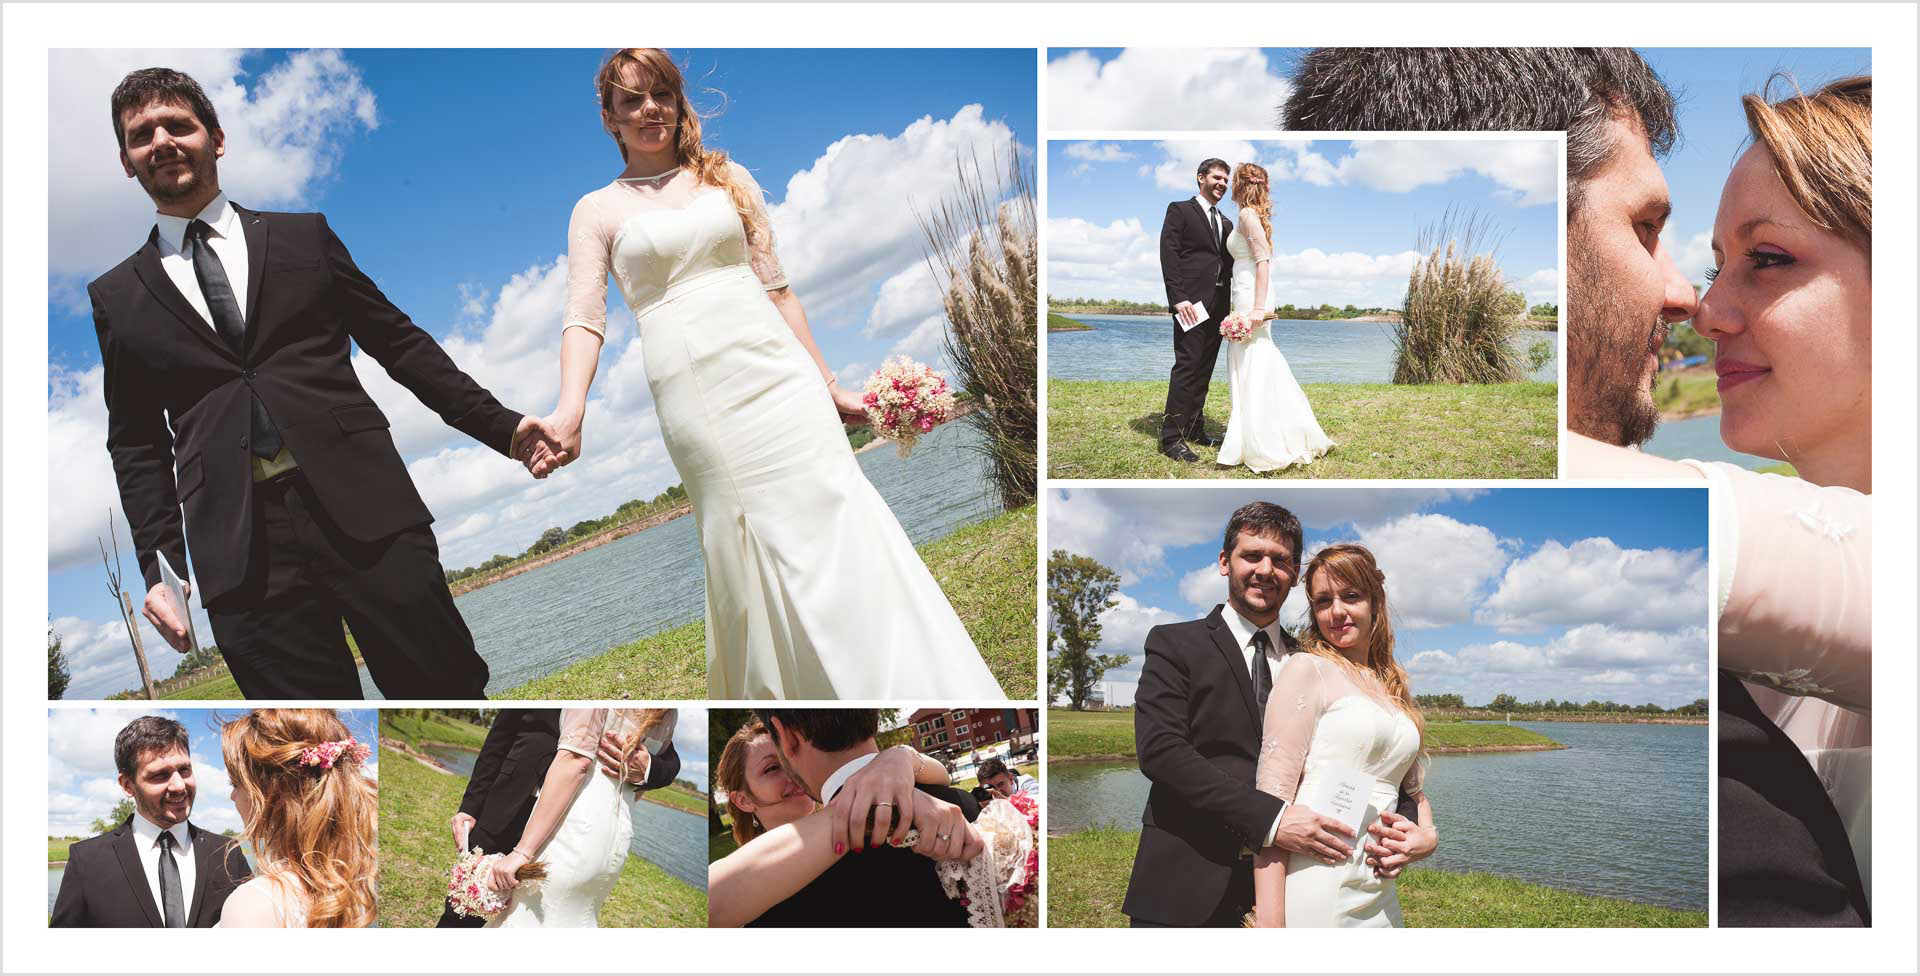 Boda de día en Howard Johnson Ezeiza